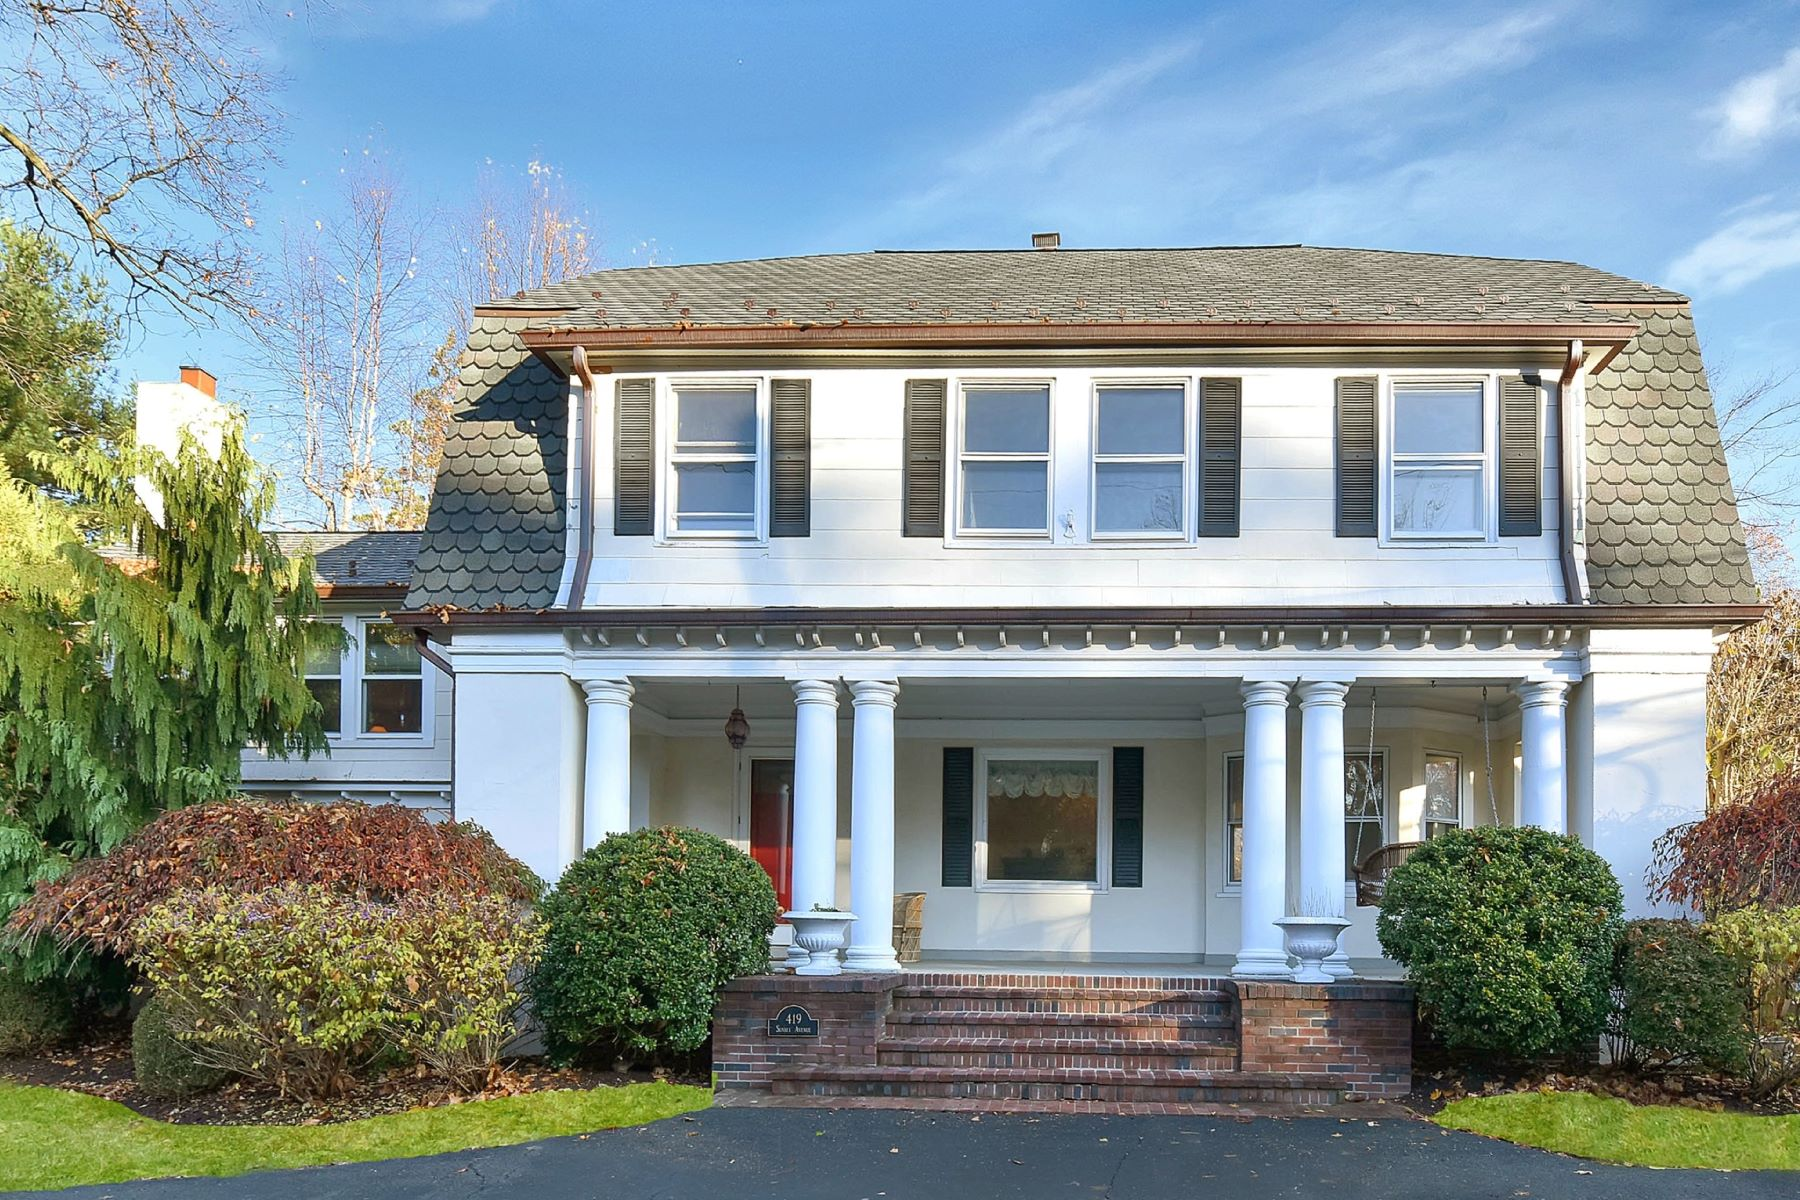 Single Family Home for Sale at Turn of the Century Charm 419 Sunset Ave Haworth, New Jersey 07641 United States